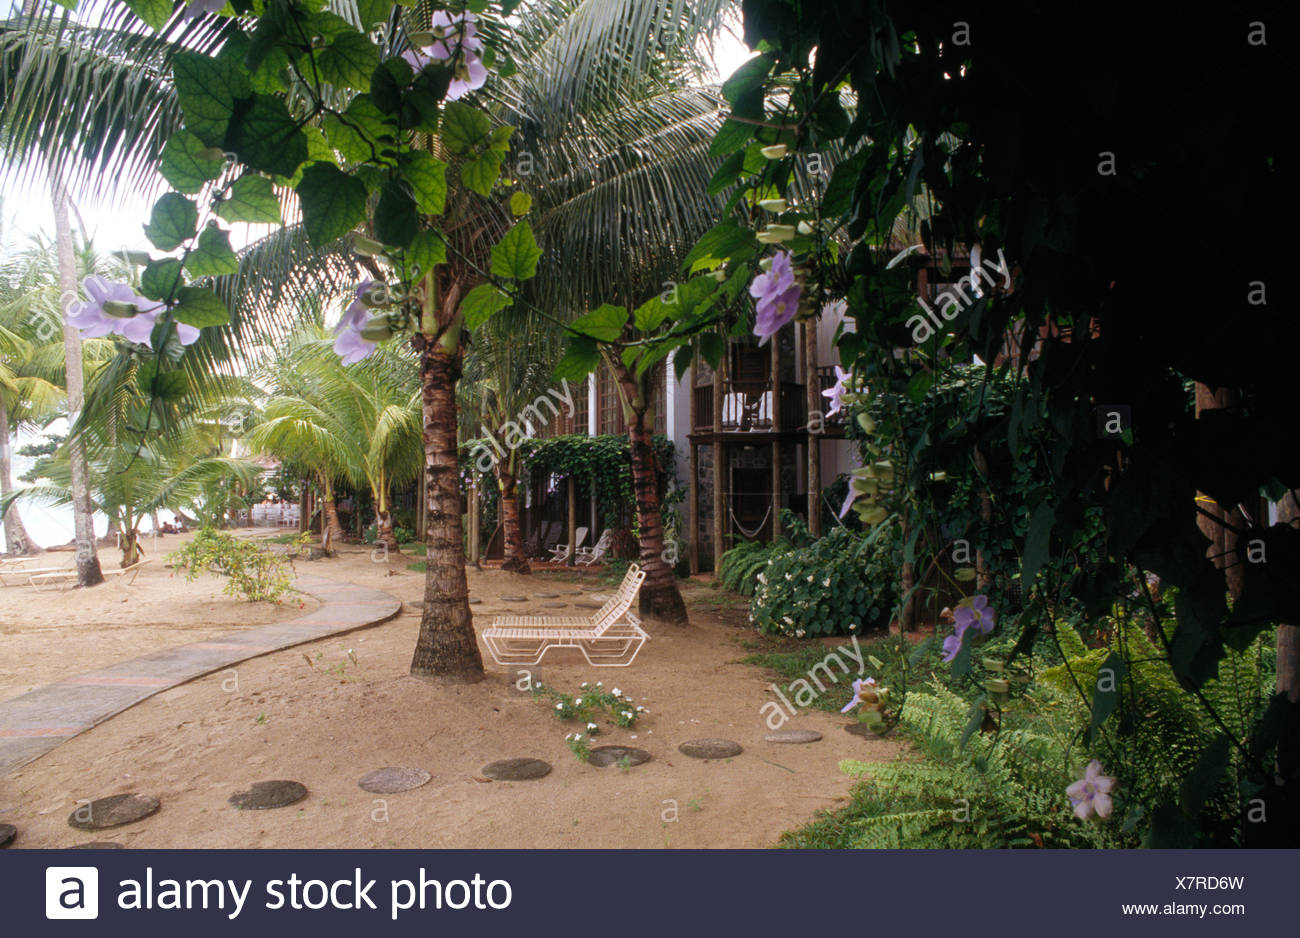 Loungers Beneath Palm Tree On Sand Patio In Front Of Colonial Style Coastal  House In The West Indies